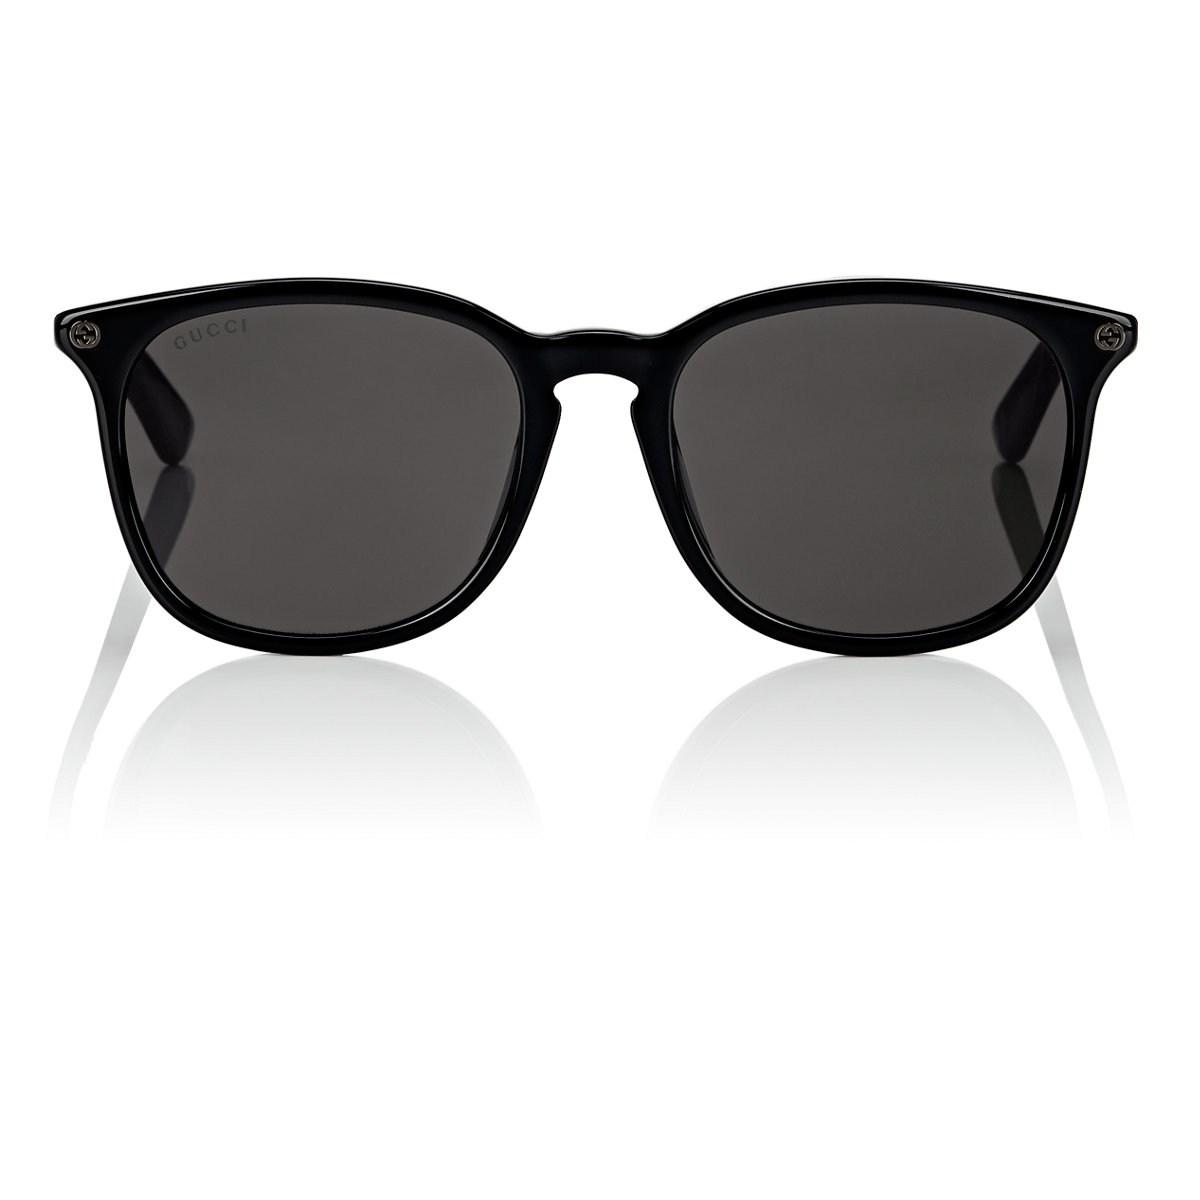 4be2bb343103d Gucci GG0154S Sunglasses in Black for Men - Lyst